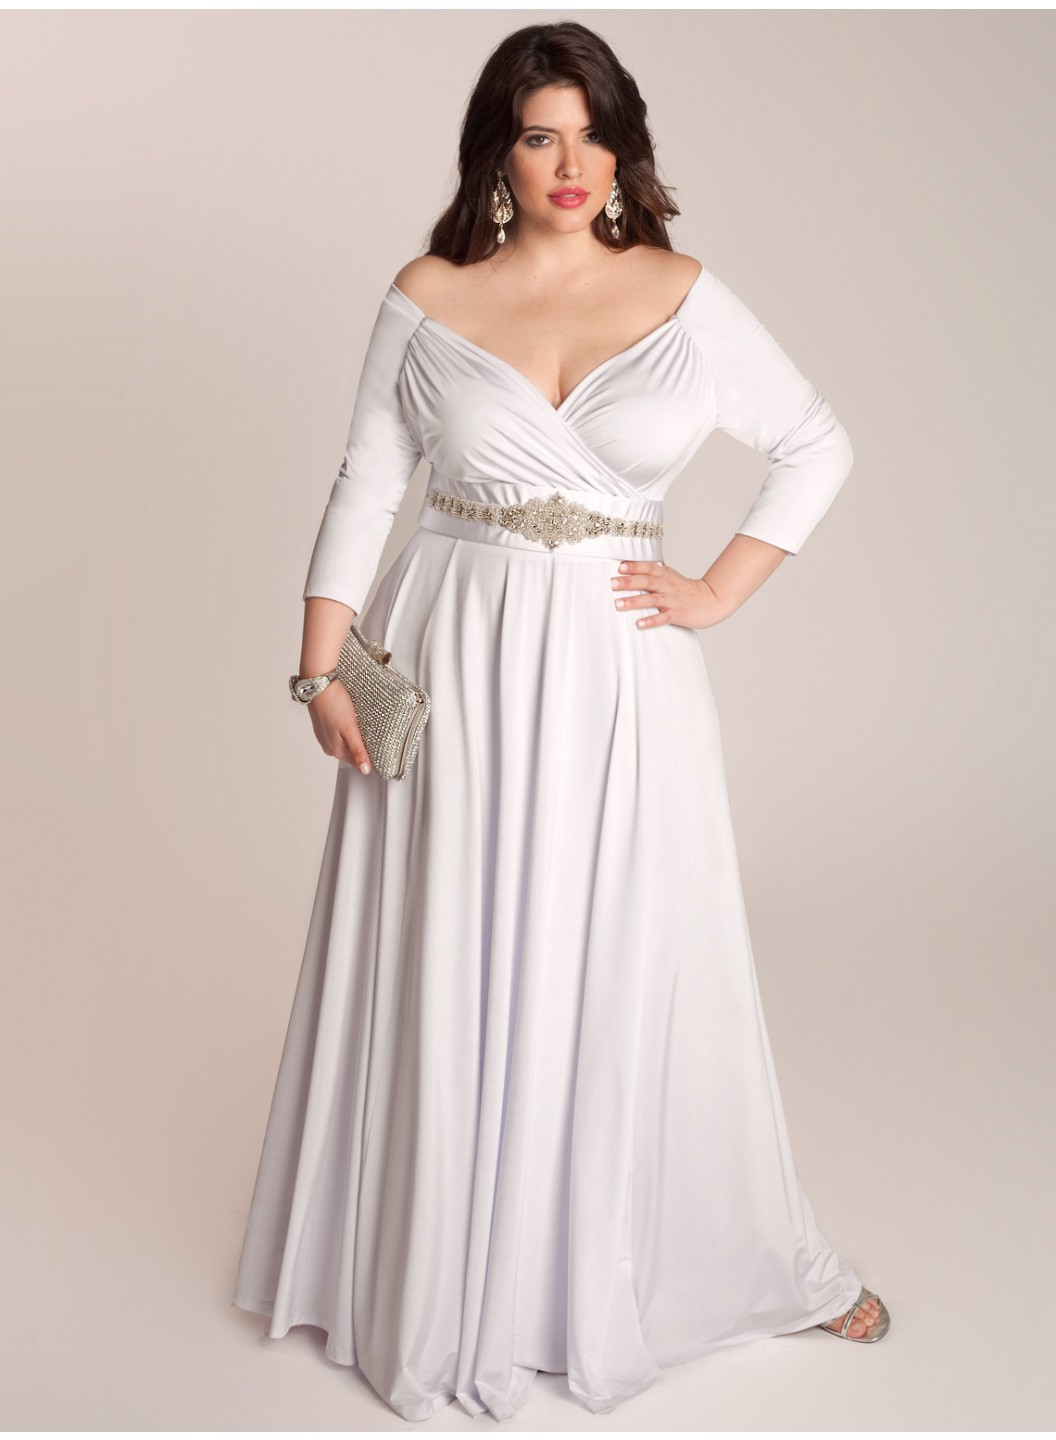 Wedding dresses plus sizetop 10 plus size wedding dress designers